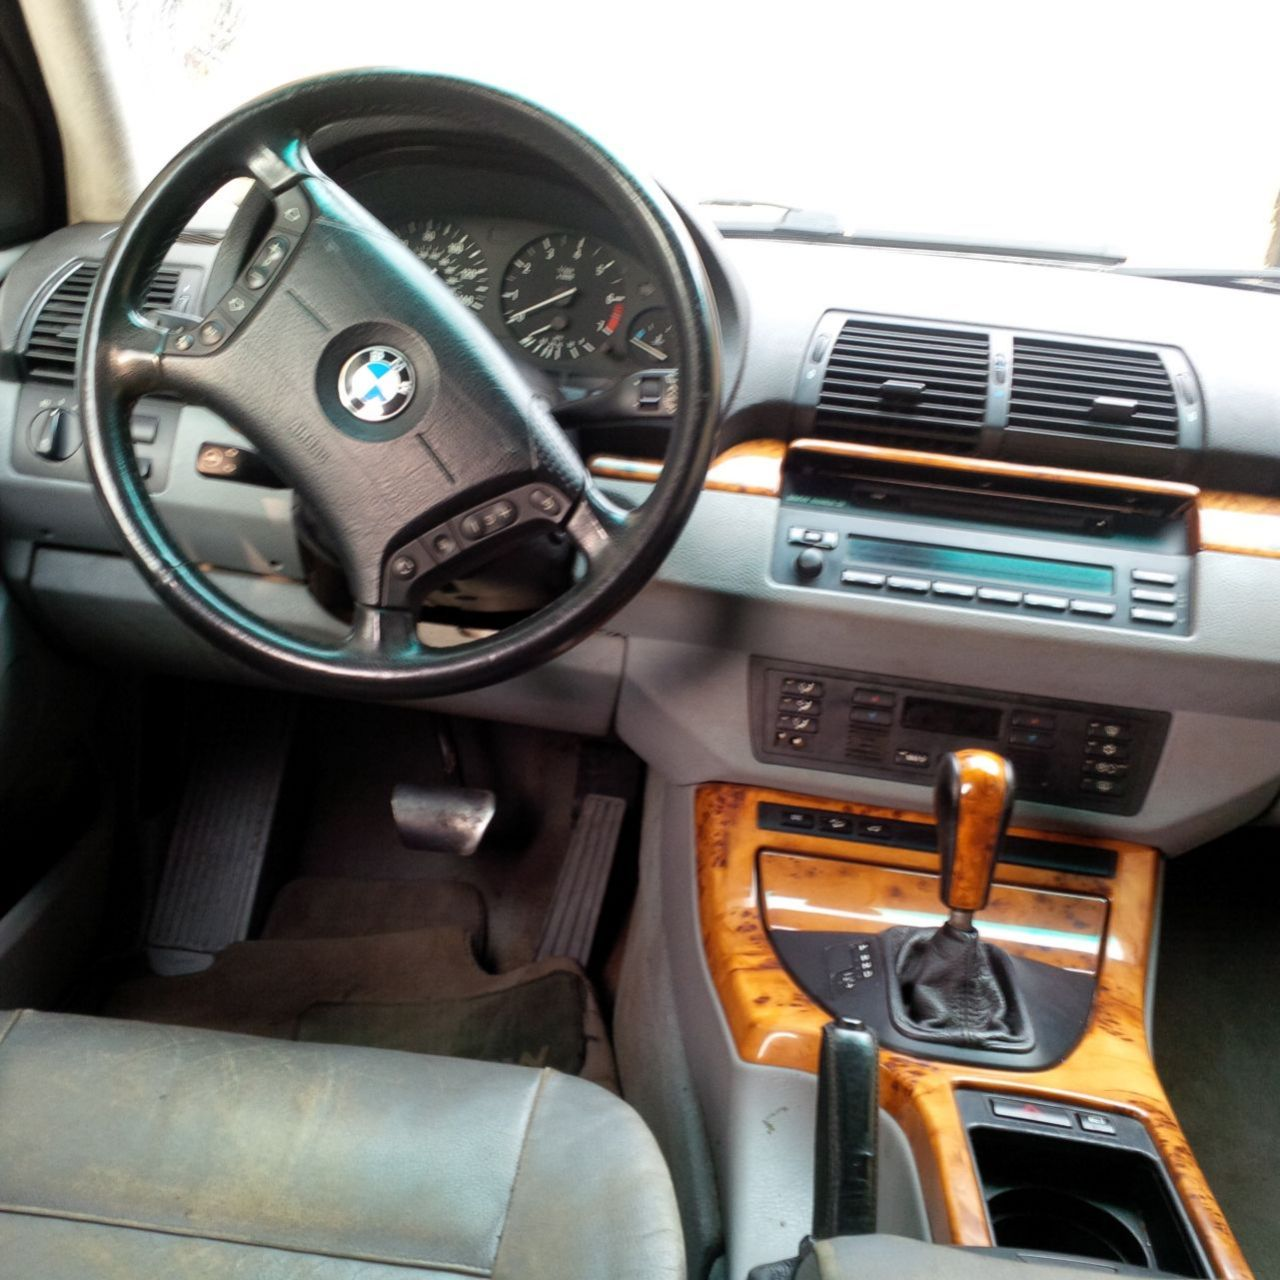 Registered(9ija Used) Bmw X5 Year: 2004 Auto Drive, Cup